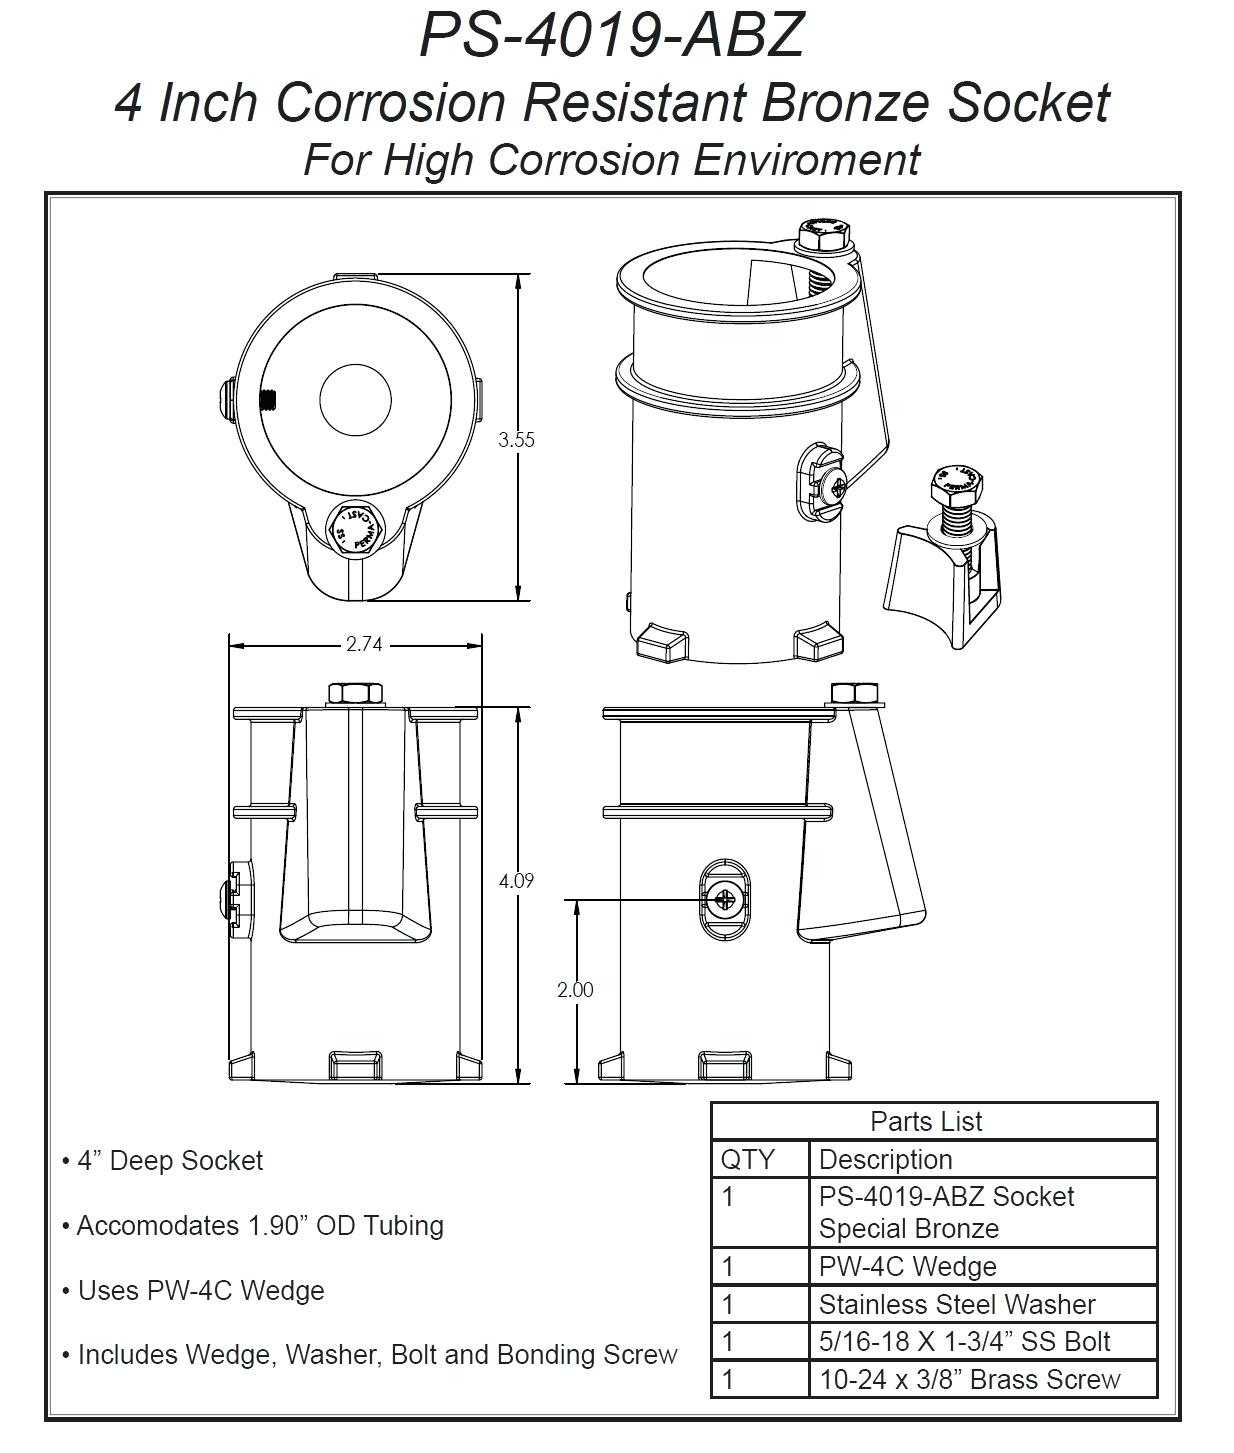 hayward super pump wiring diagram Collection-Hayward Super Ii Pump Wiring Diagram Inspirational Diagram Hayward Pool Pump Wiring Diagram 15-q